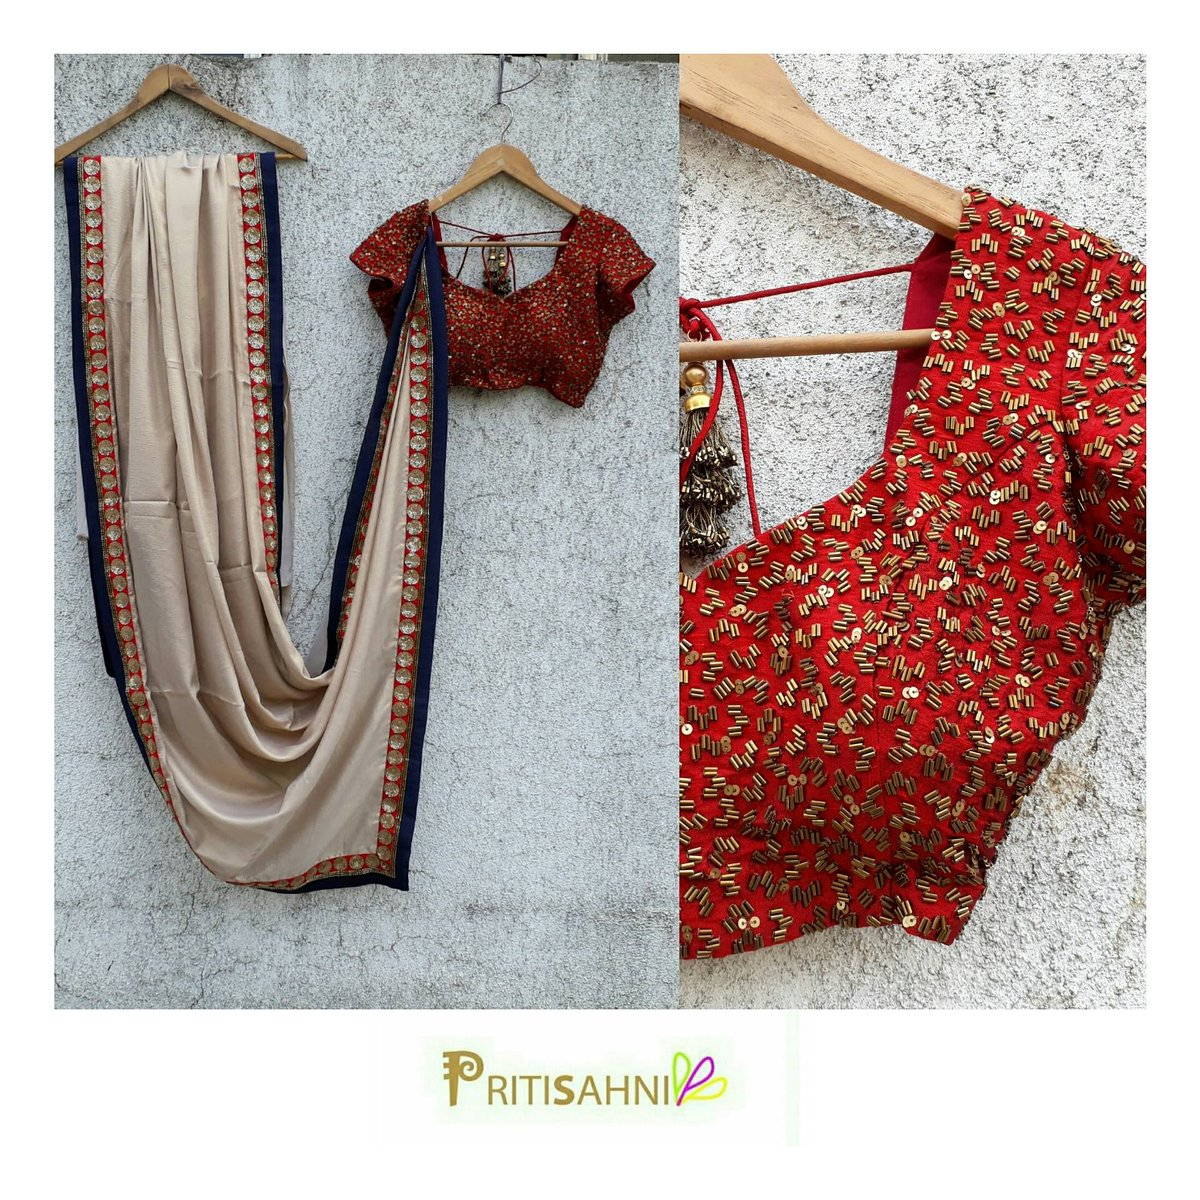 PRITISAHNI DESIGNS. Preti by Priti Sahni. 